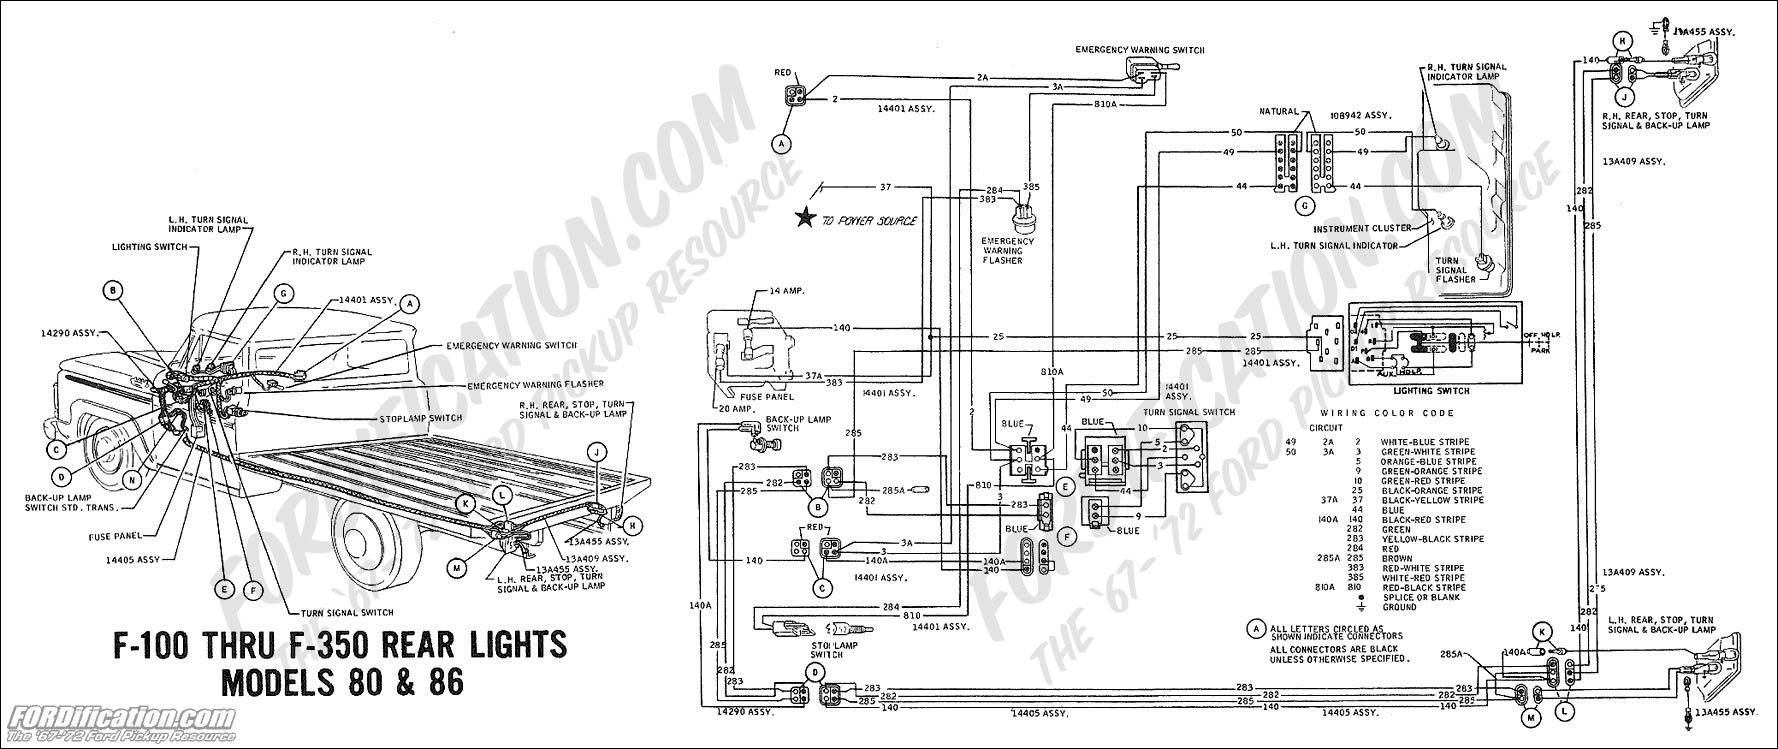 wiring_69rearlights mdls80 86 ford truck technical drawings and schematics section h wiring Wiring Diagram for 1965 Chevy Truck at honlapkeszites.co